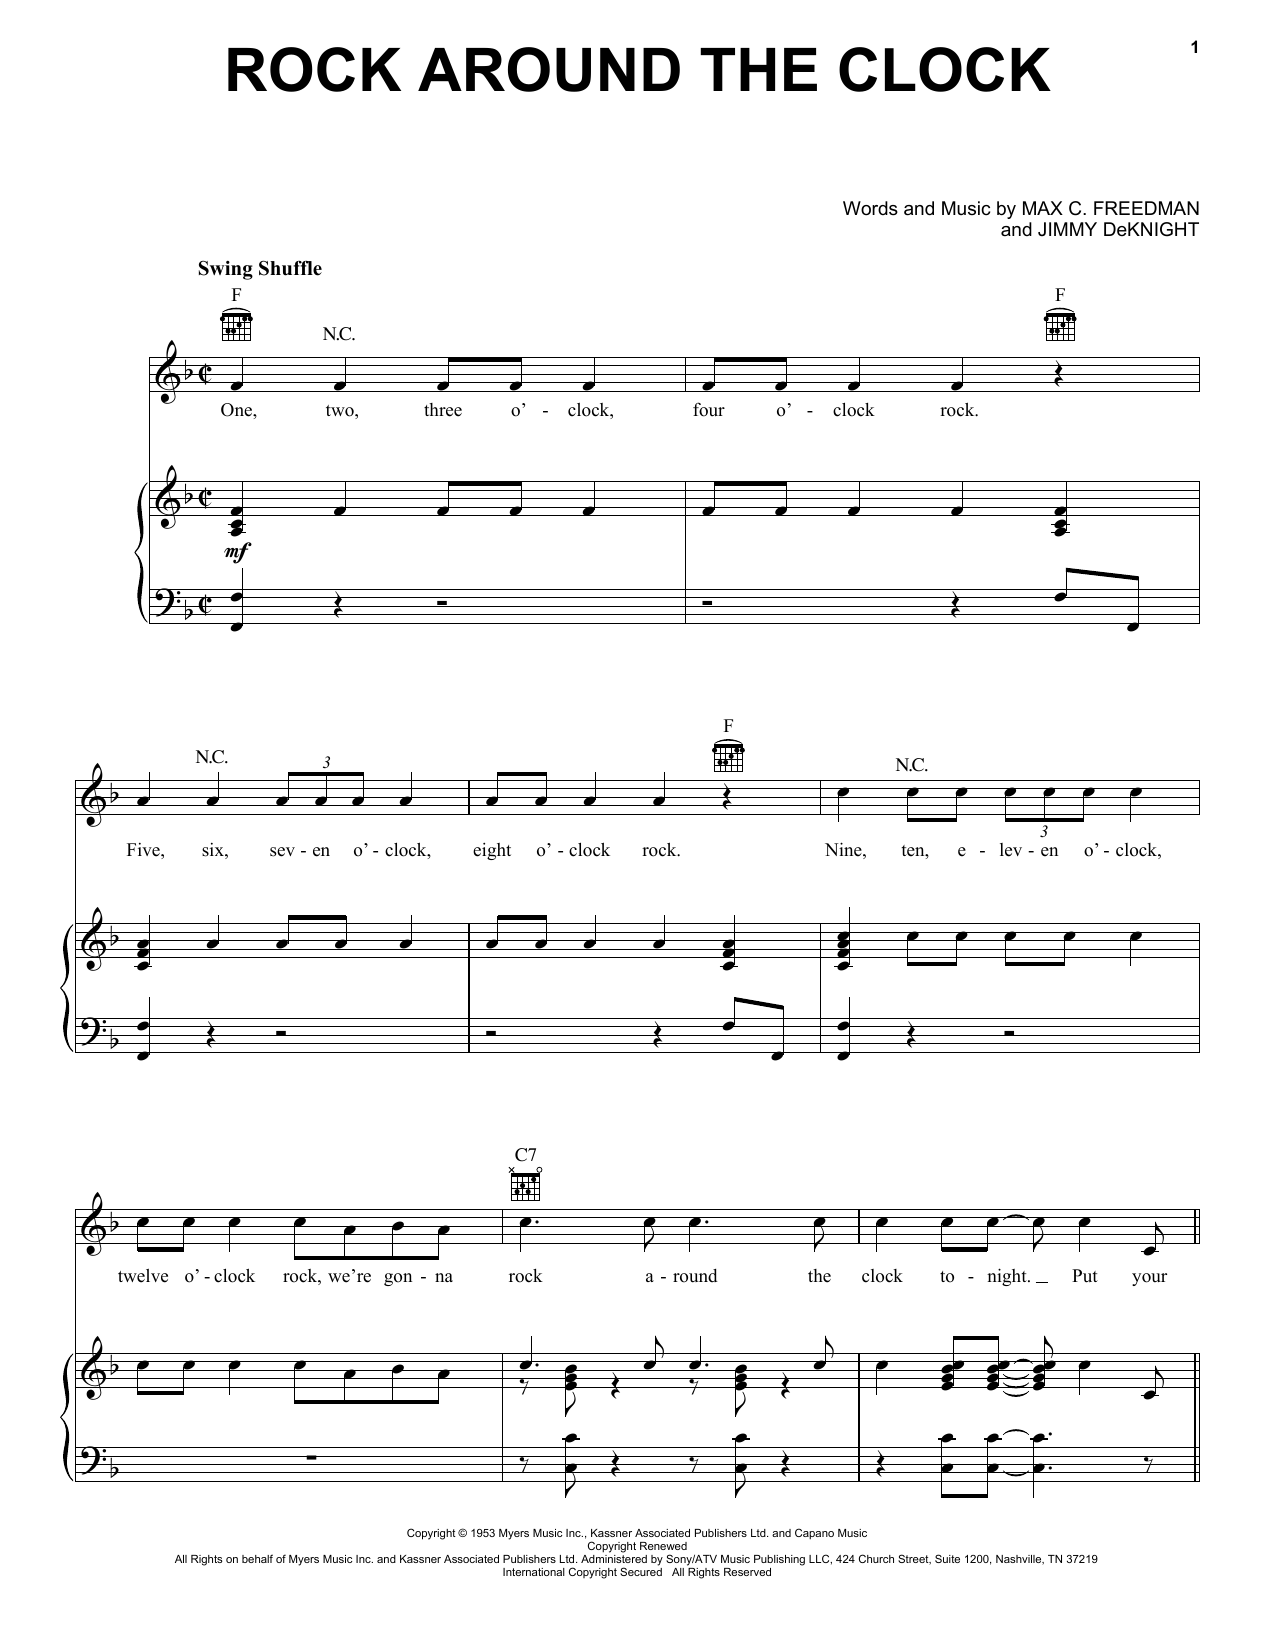 Bill Haley & His Comets Rock Around The Clock sheet music notes and chords. Download Printable PDF.